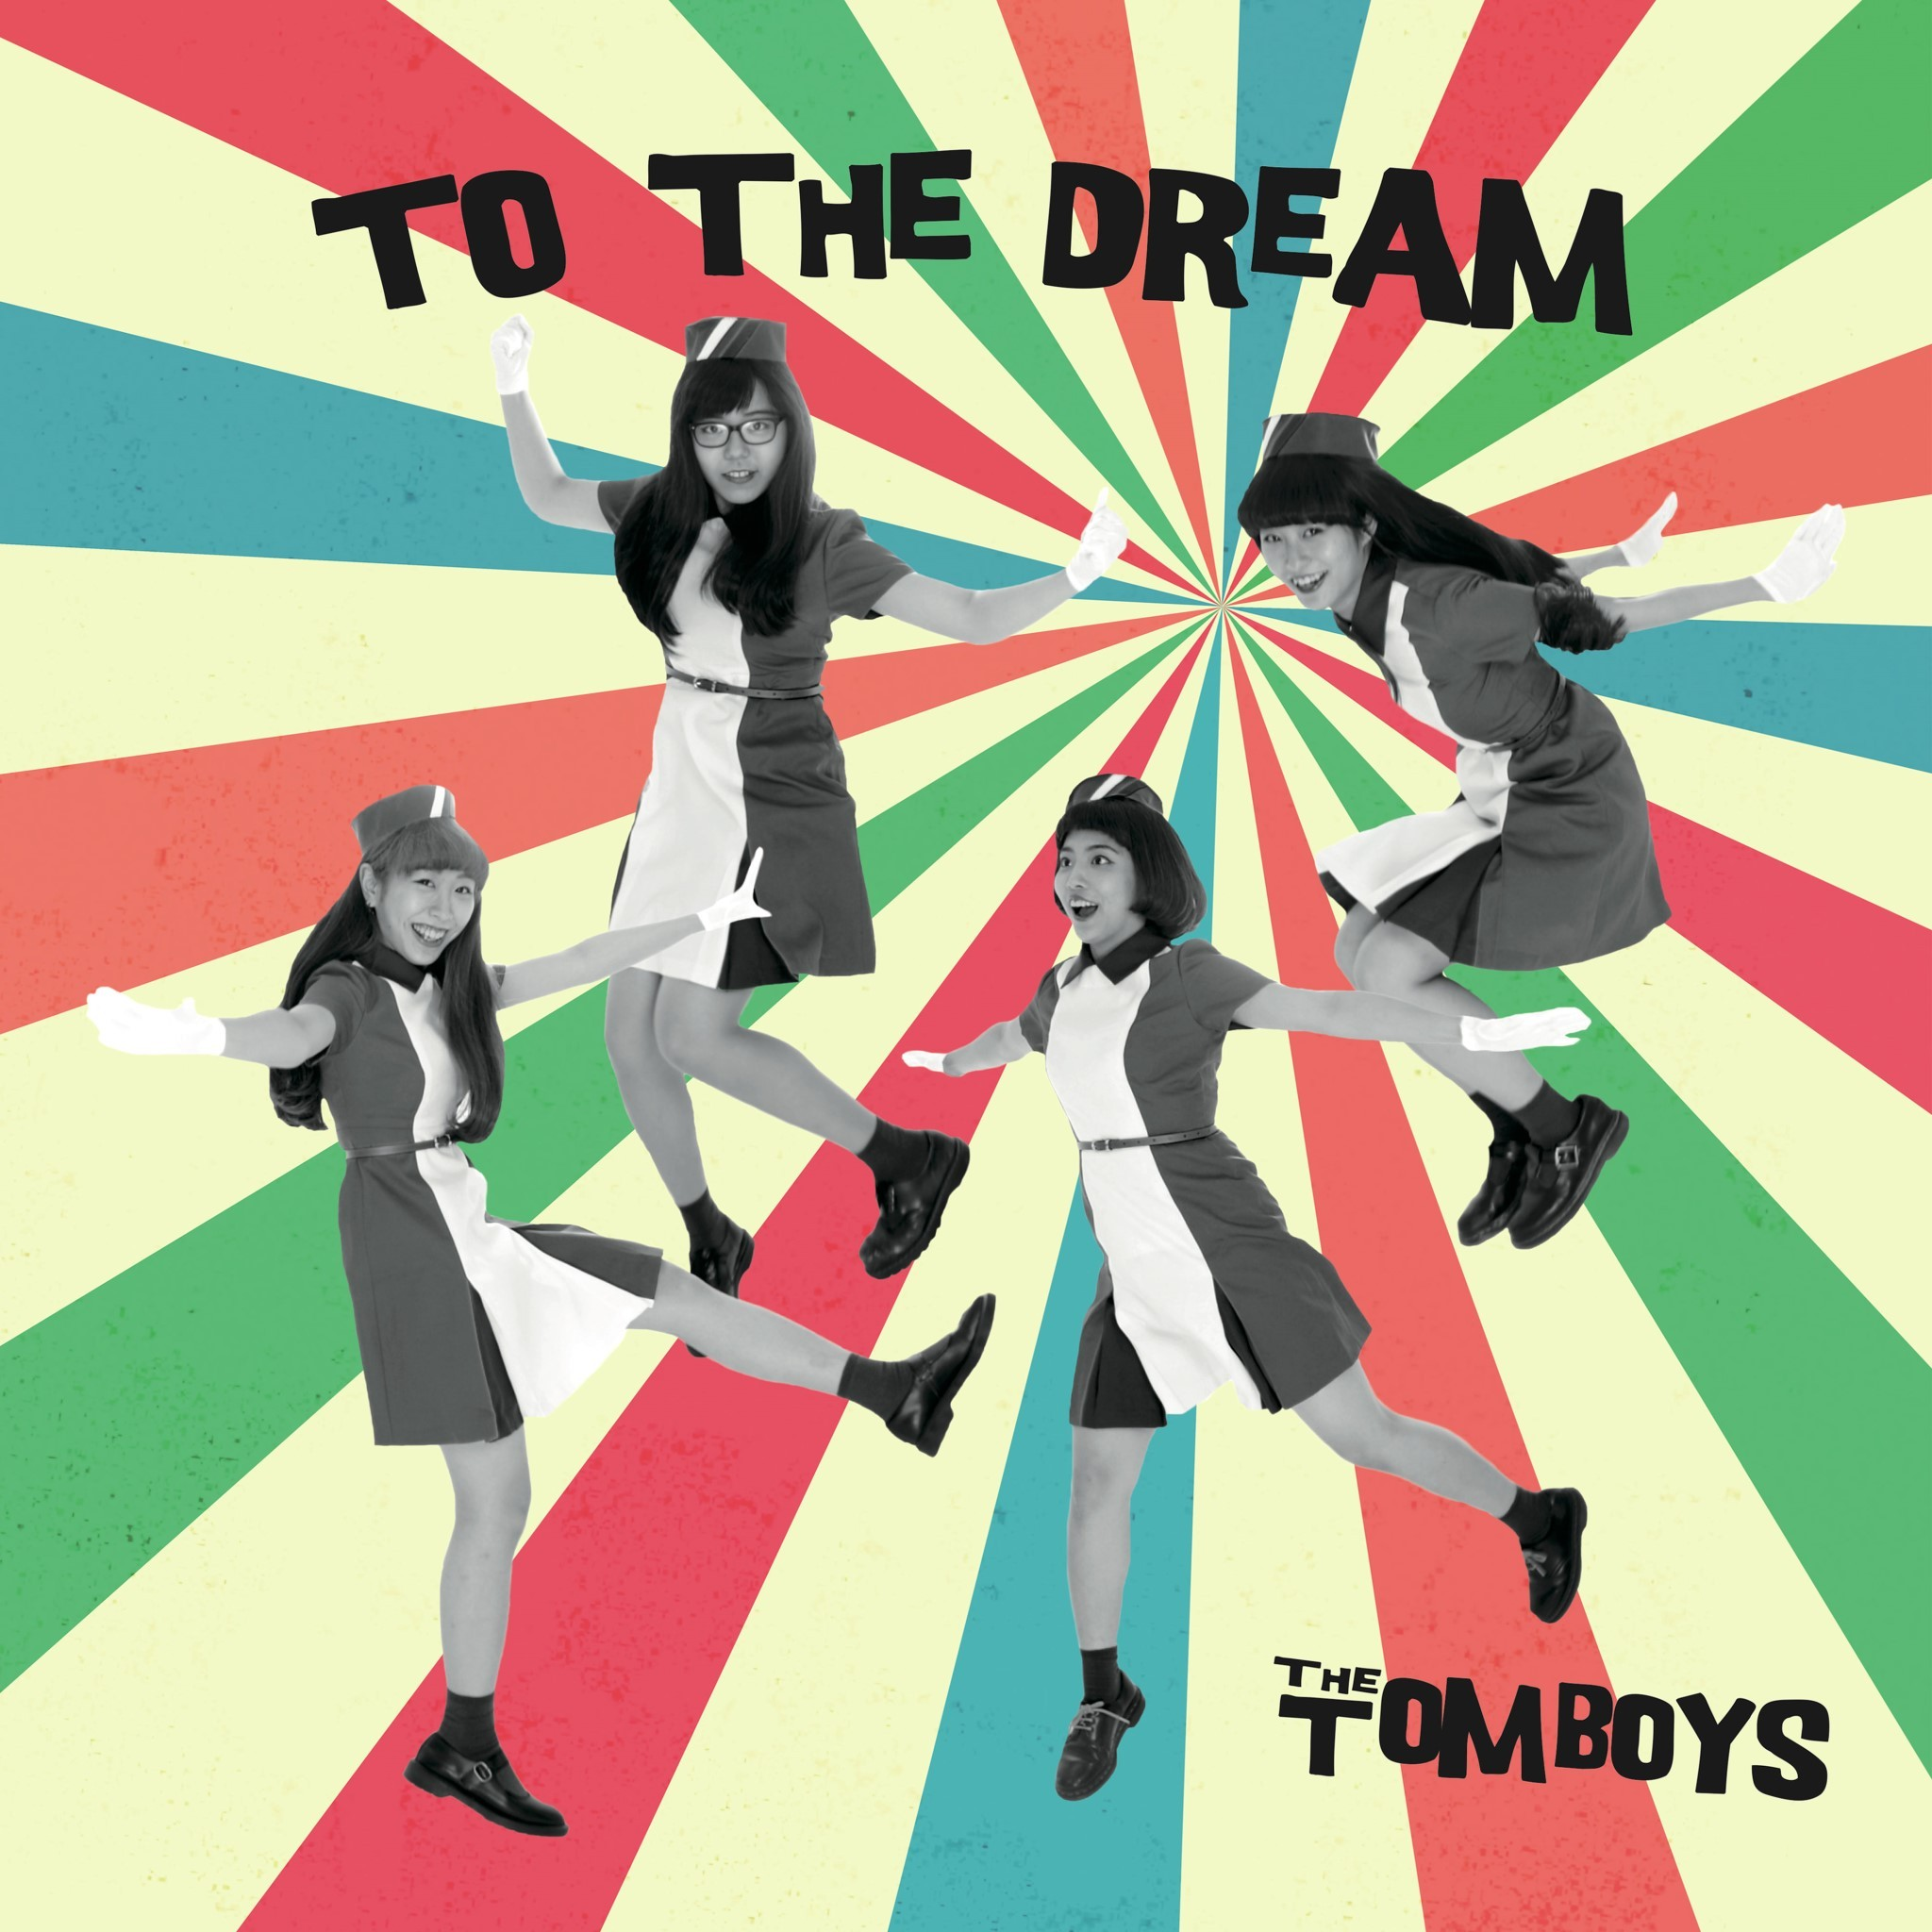 THE TOMBOYS『TO THE DREAM』